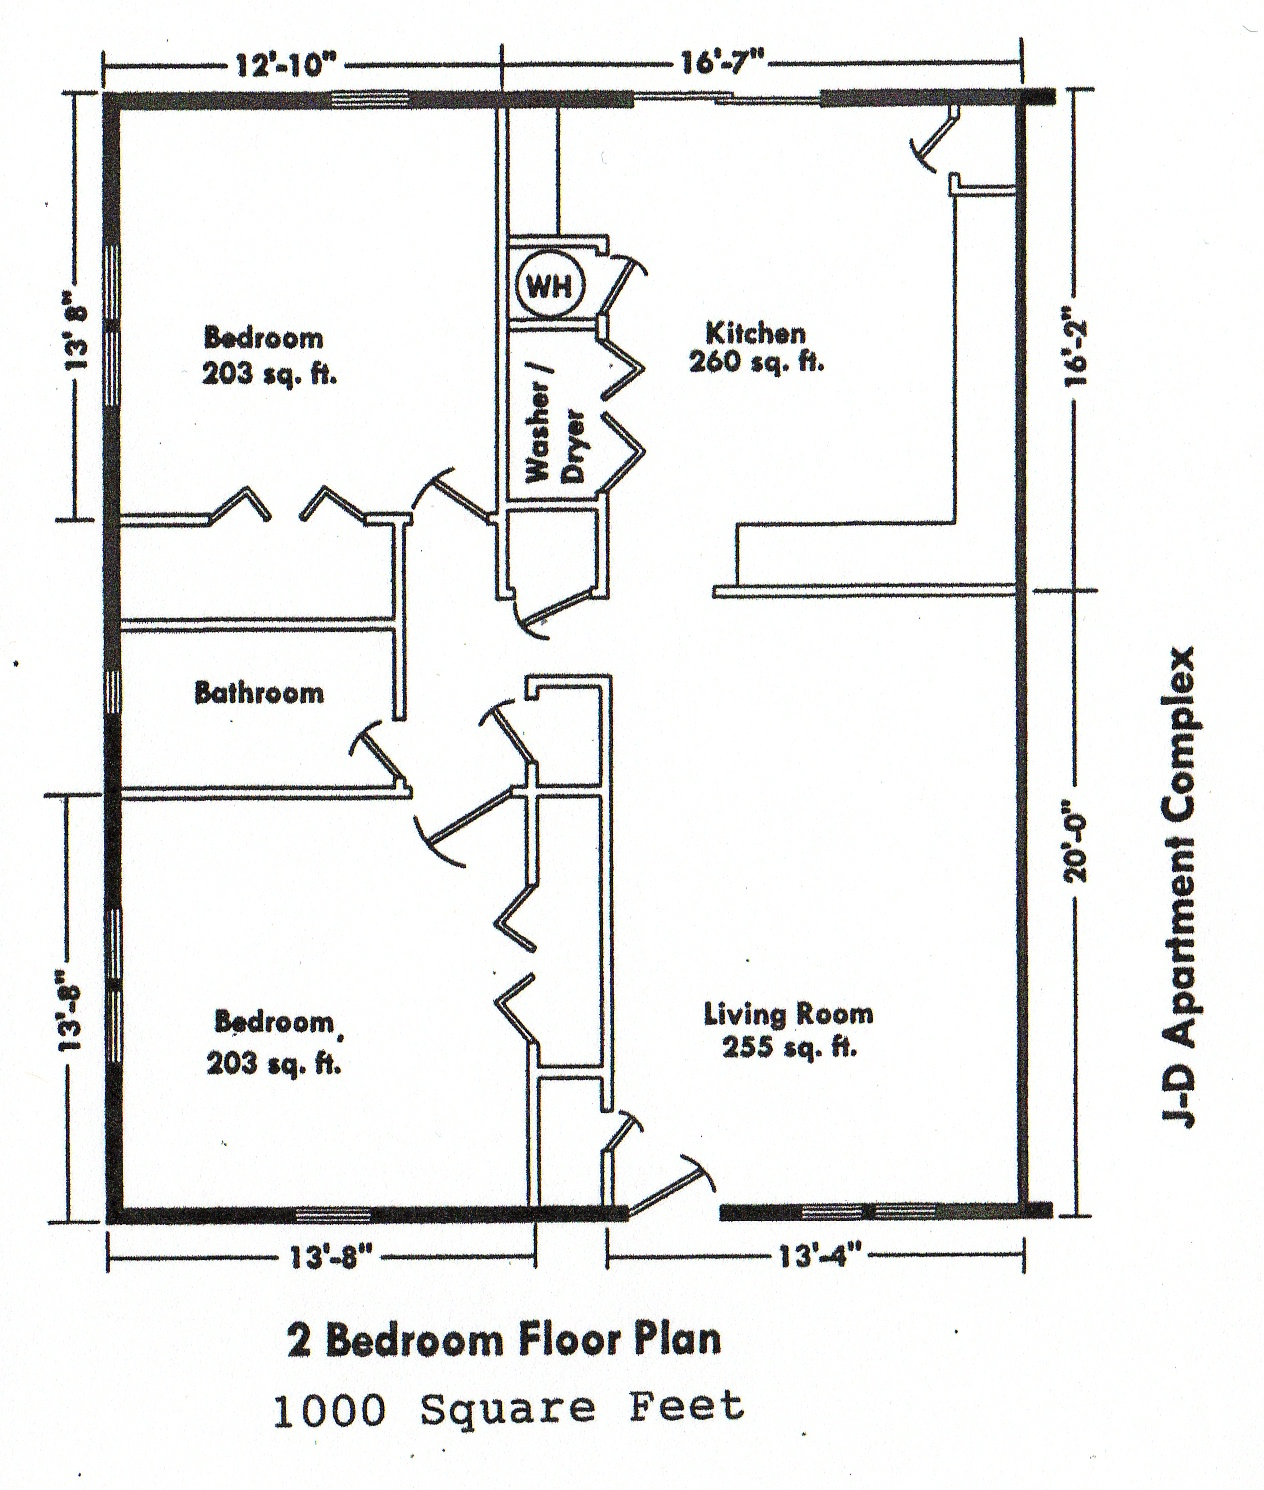 Modular home modular homes 2 bedroom floor plans for Bedroom floor plans